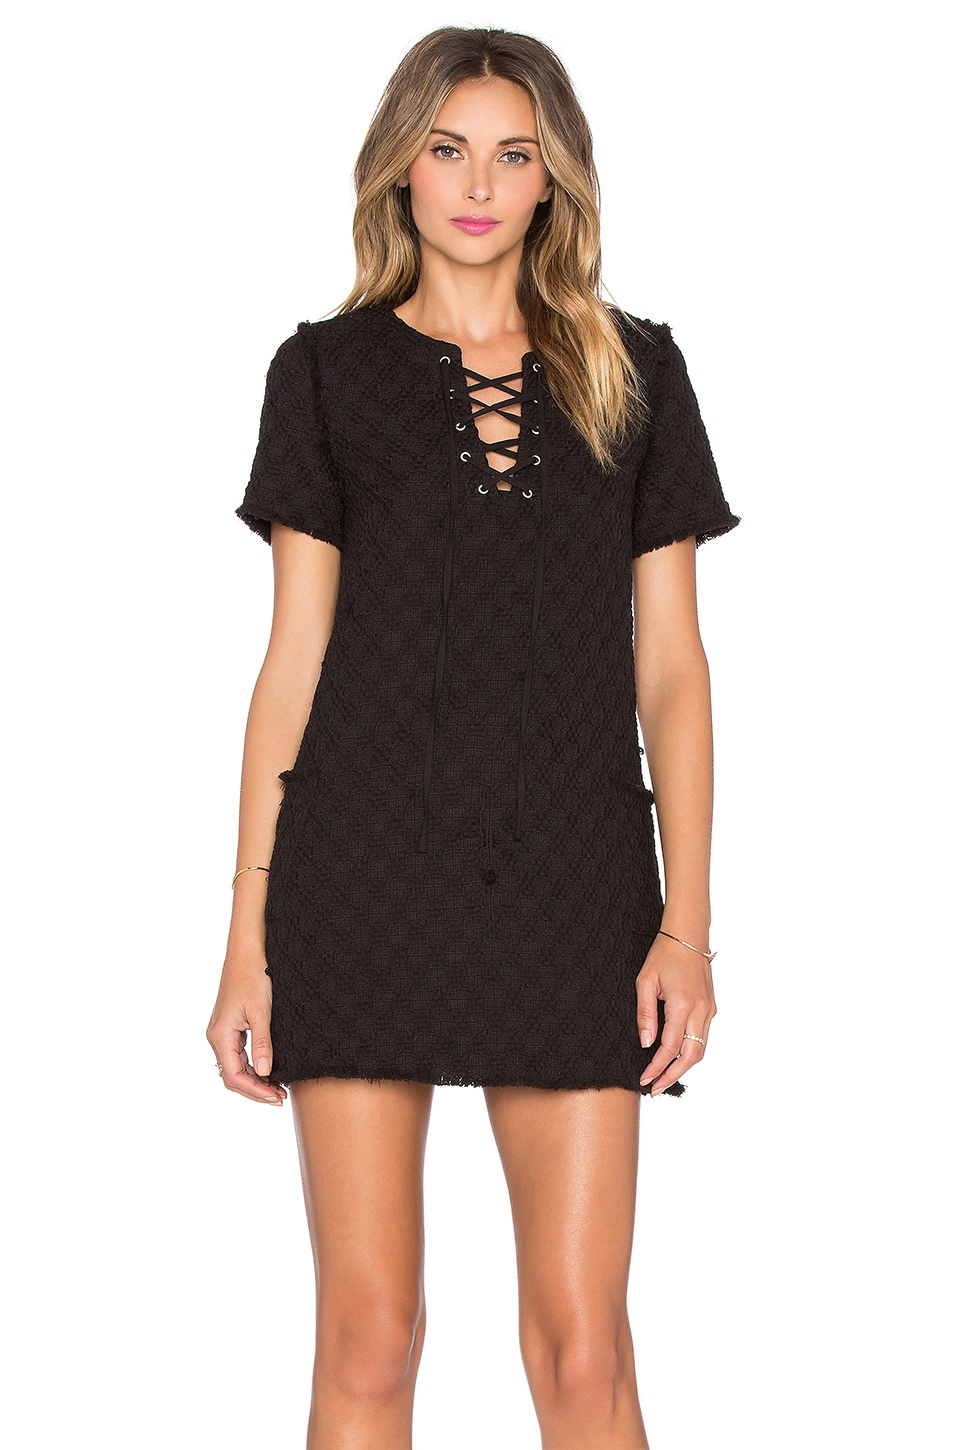 J.O.A. Lace Up Shift Dress in Black